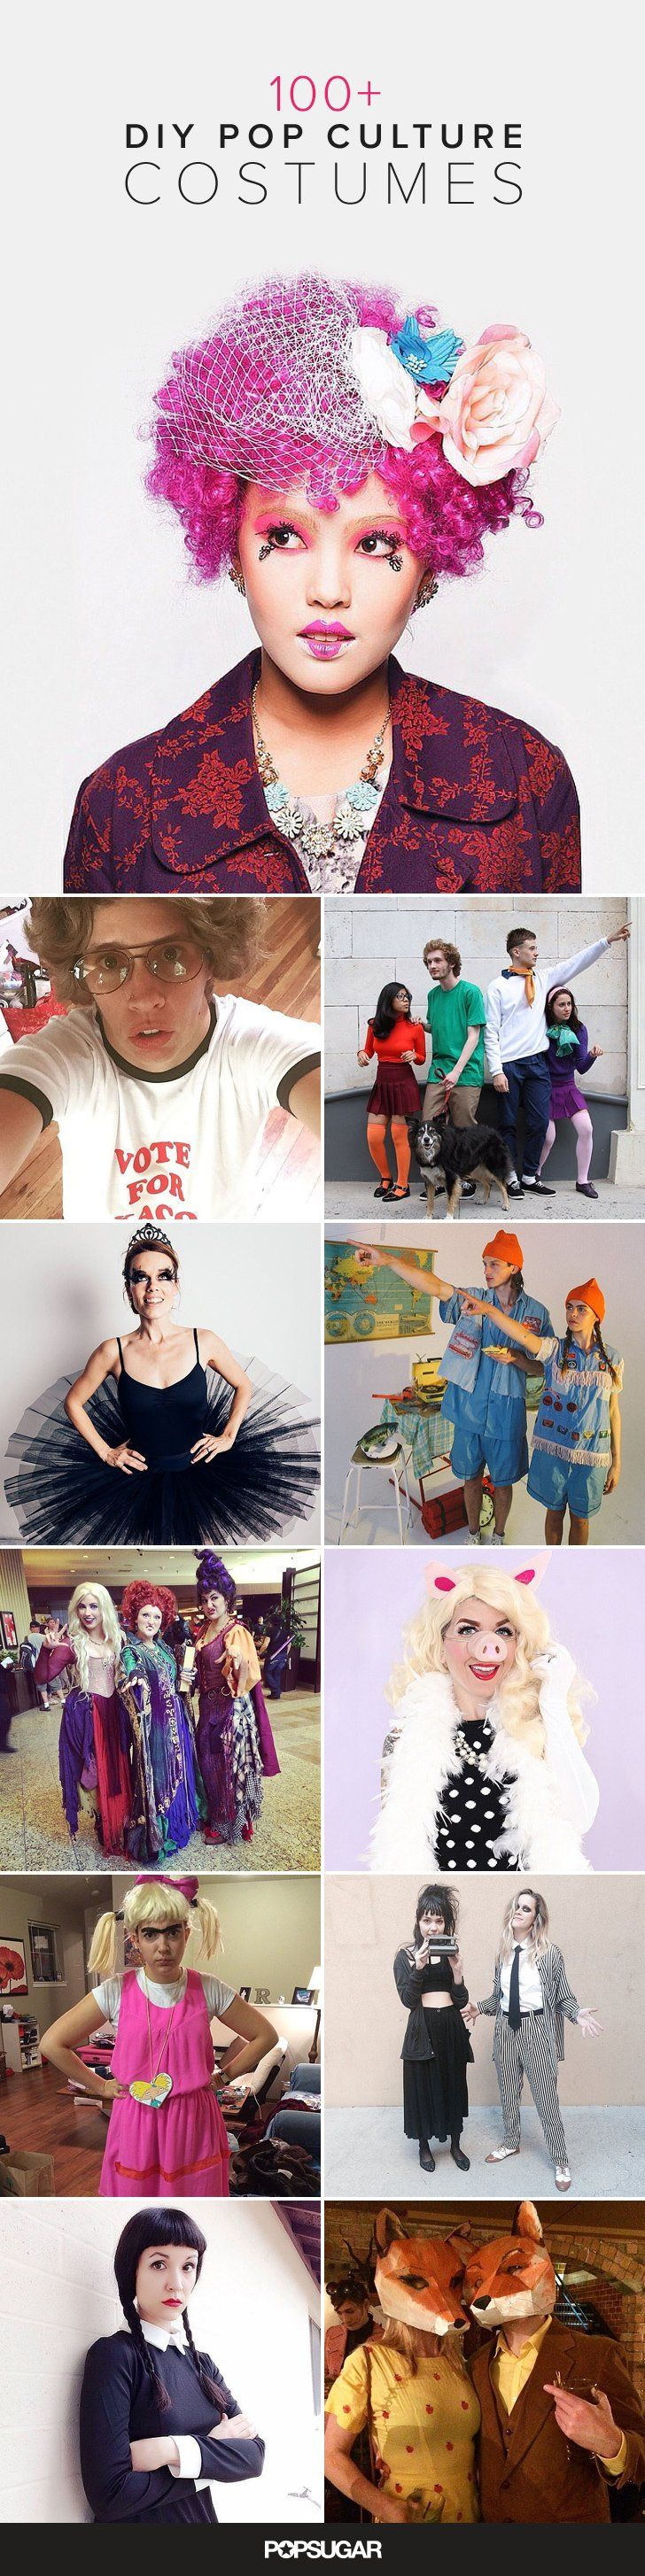 Pin for Later: 117 Ingenious DIY Costumes From Your Favorite TV Shows and Movies